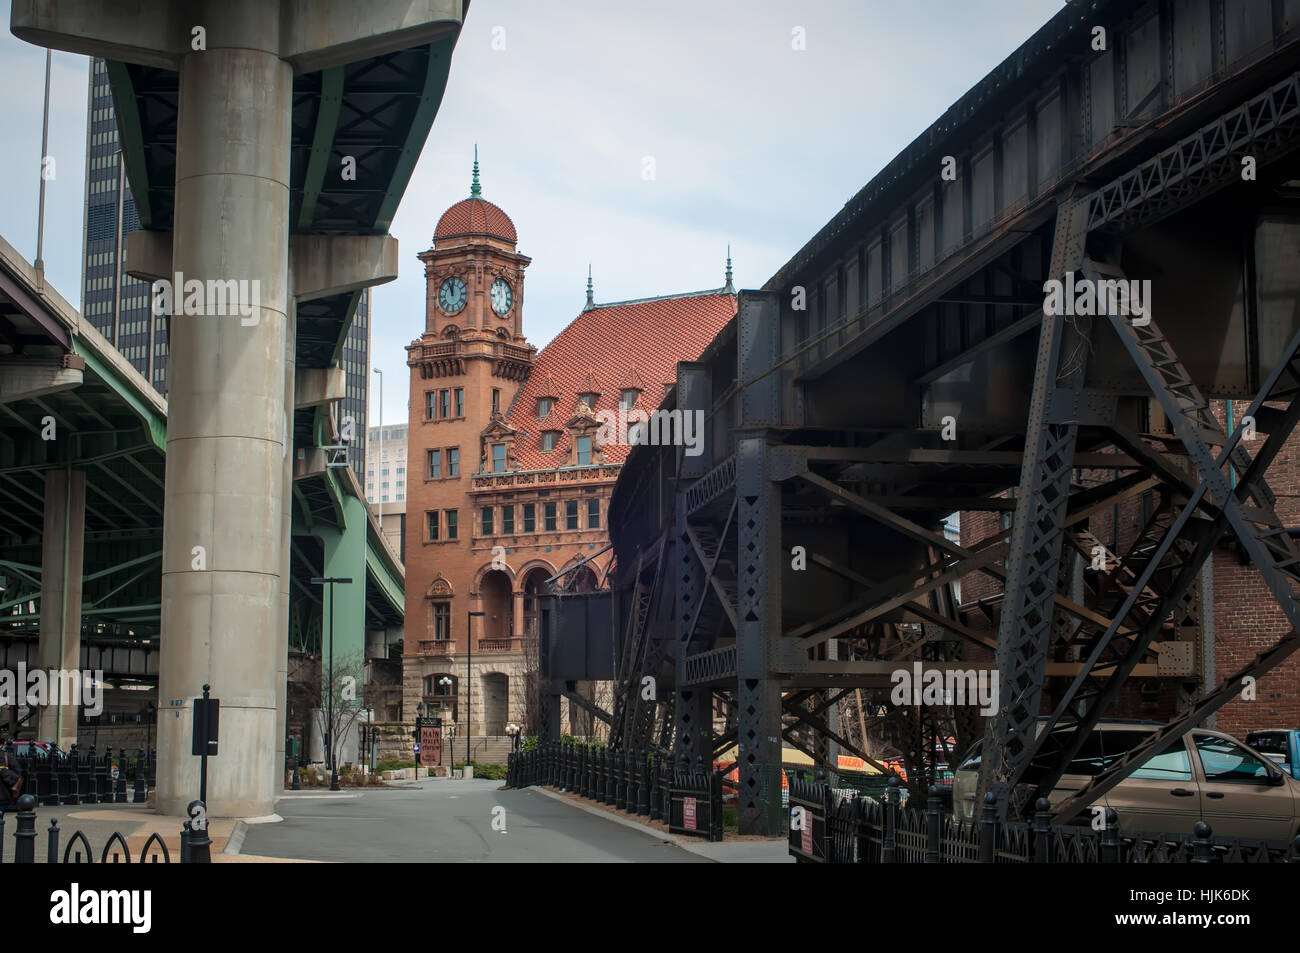 station, railway, locomotive, train, engine, rolling stock, vehicle, means of - Stock Image